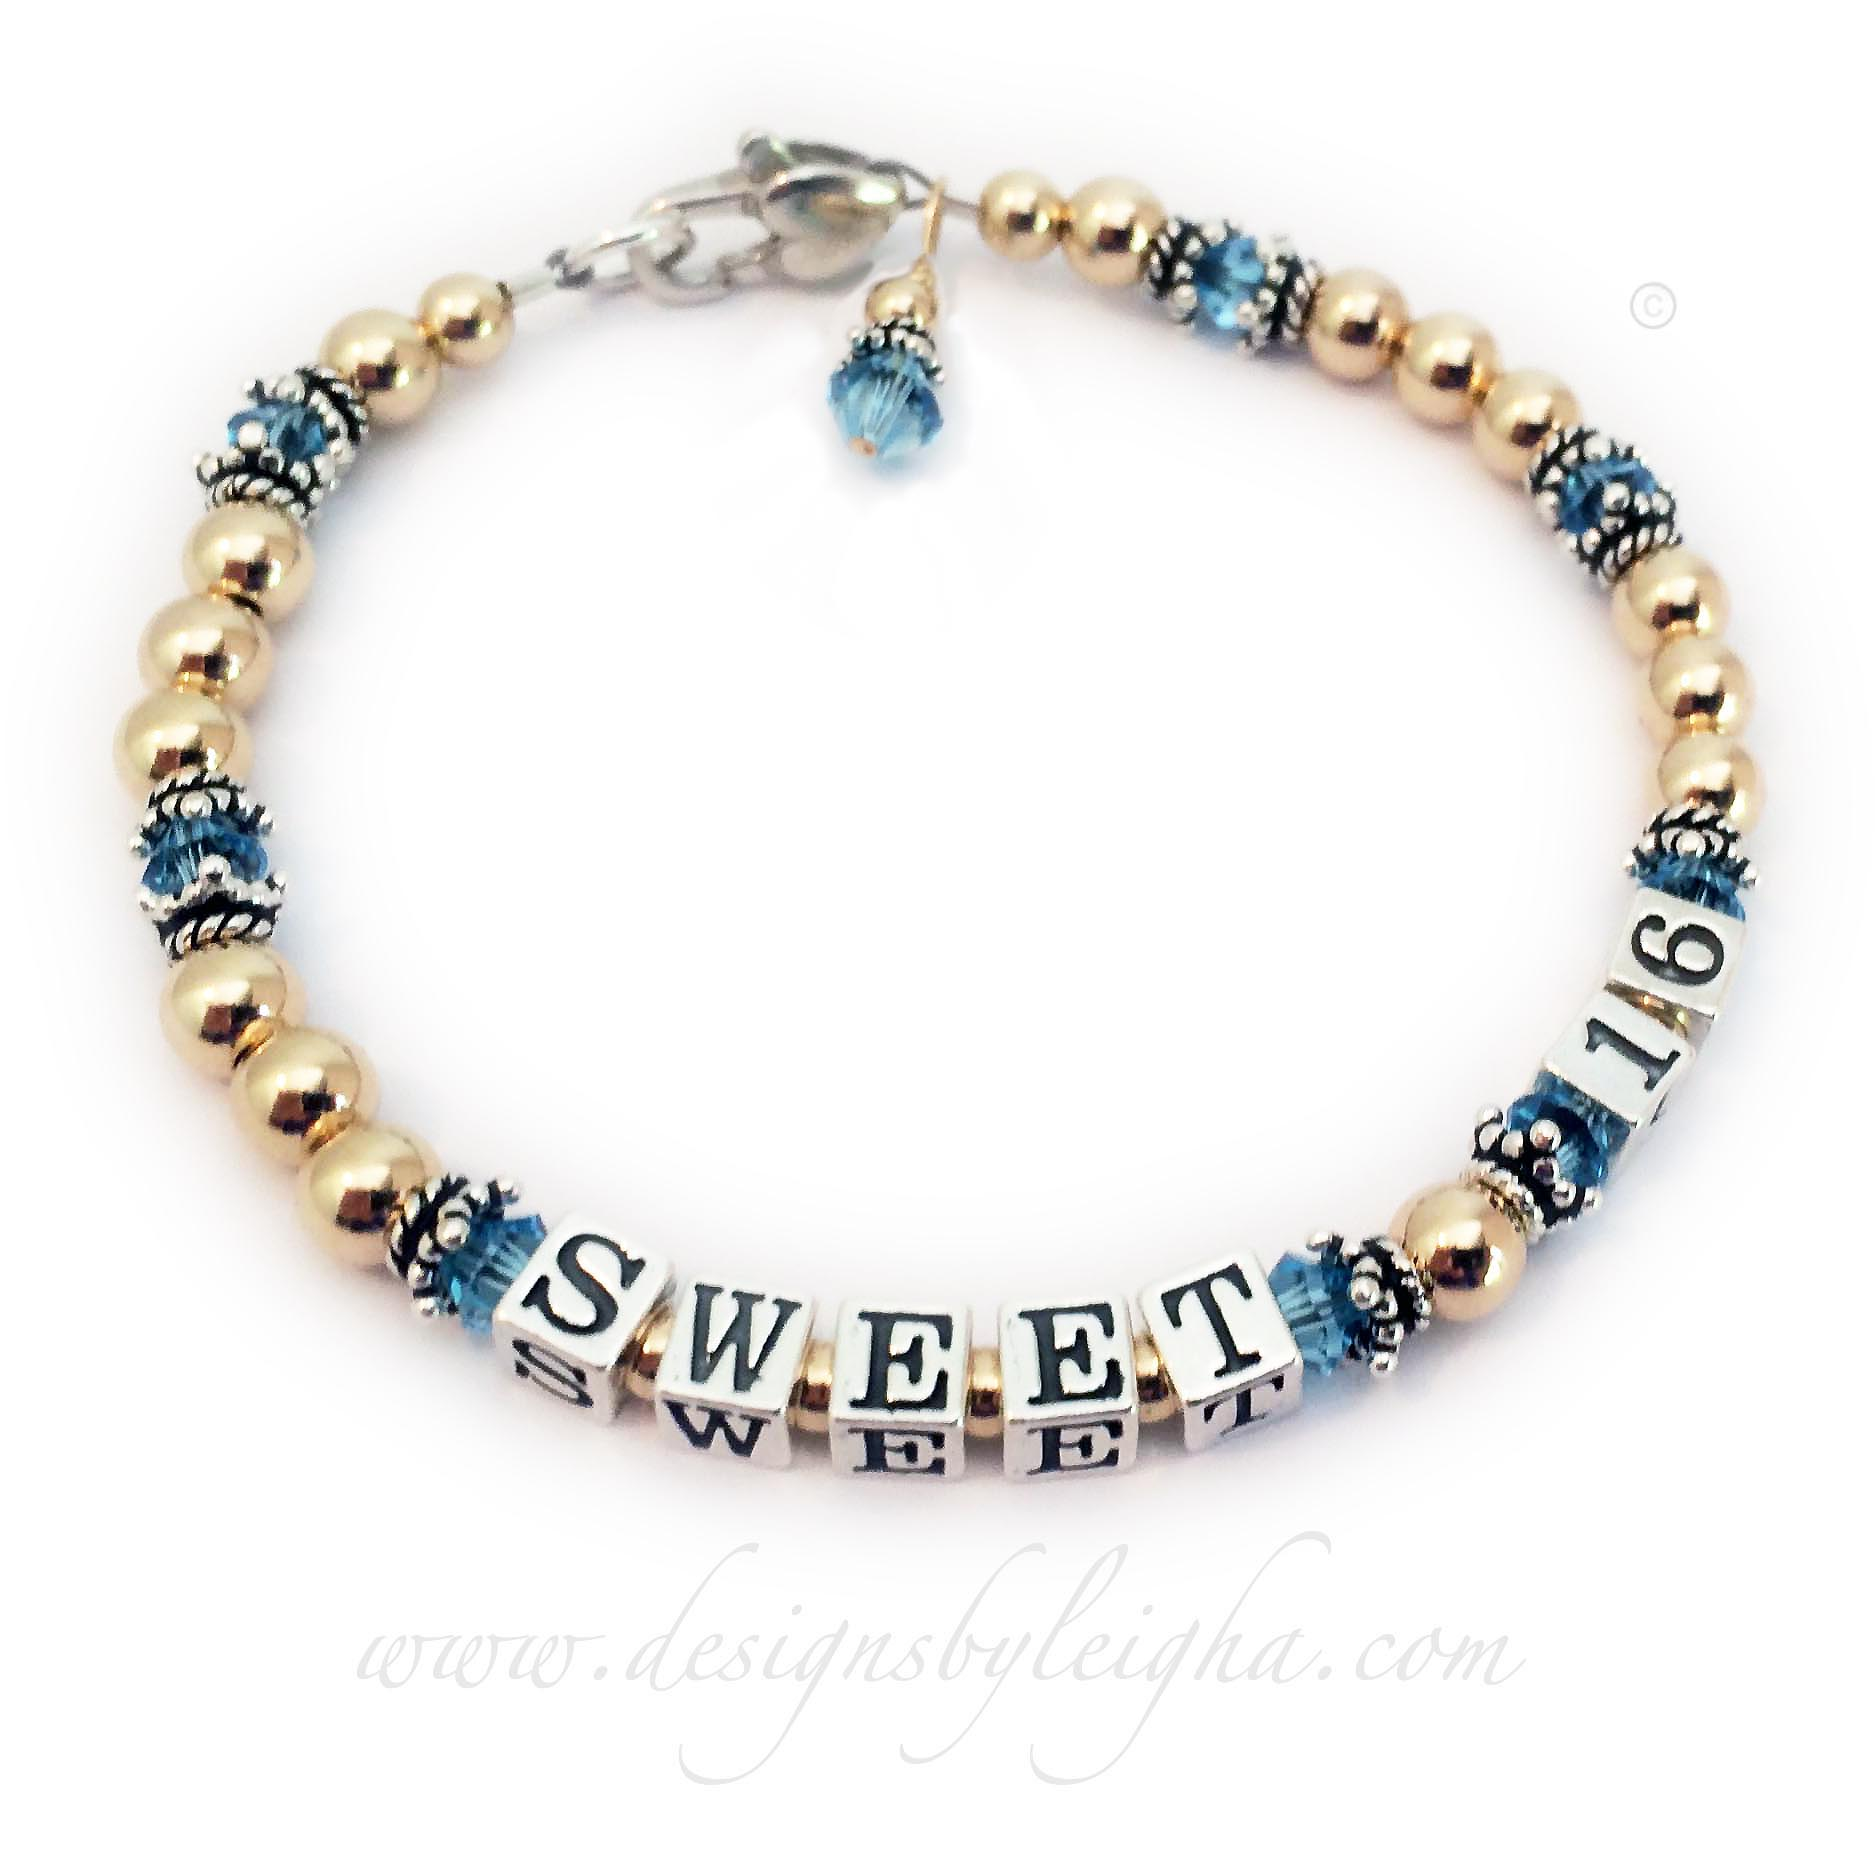 This is a Gold Aquamarine or March (you choose the birth month) Swarovski crystal Sweet 16 bracelet for a beautiful birthday girl. You can choose any color Swarovski crystals or multiple colors (e.g. school or team colors) and can customize and personalize it with sterling silver charms.